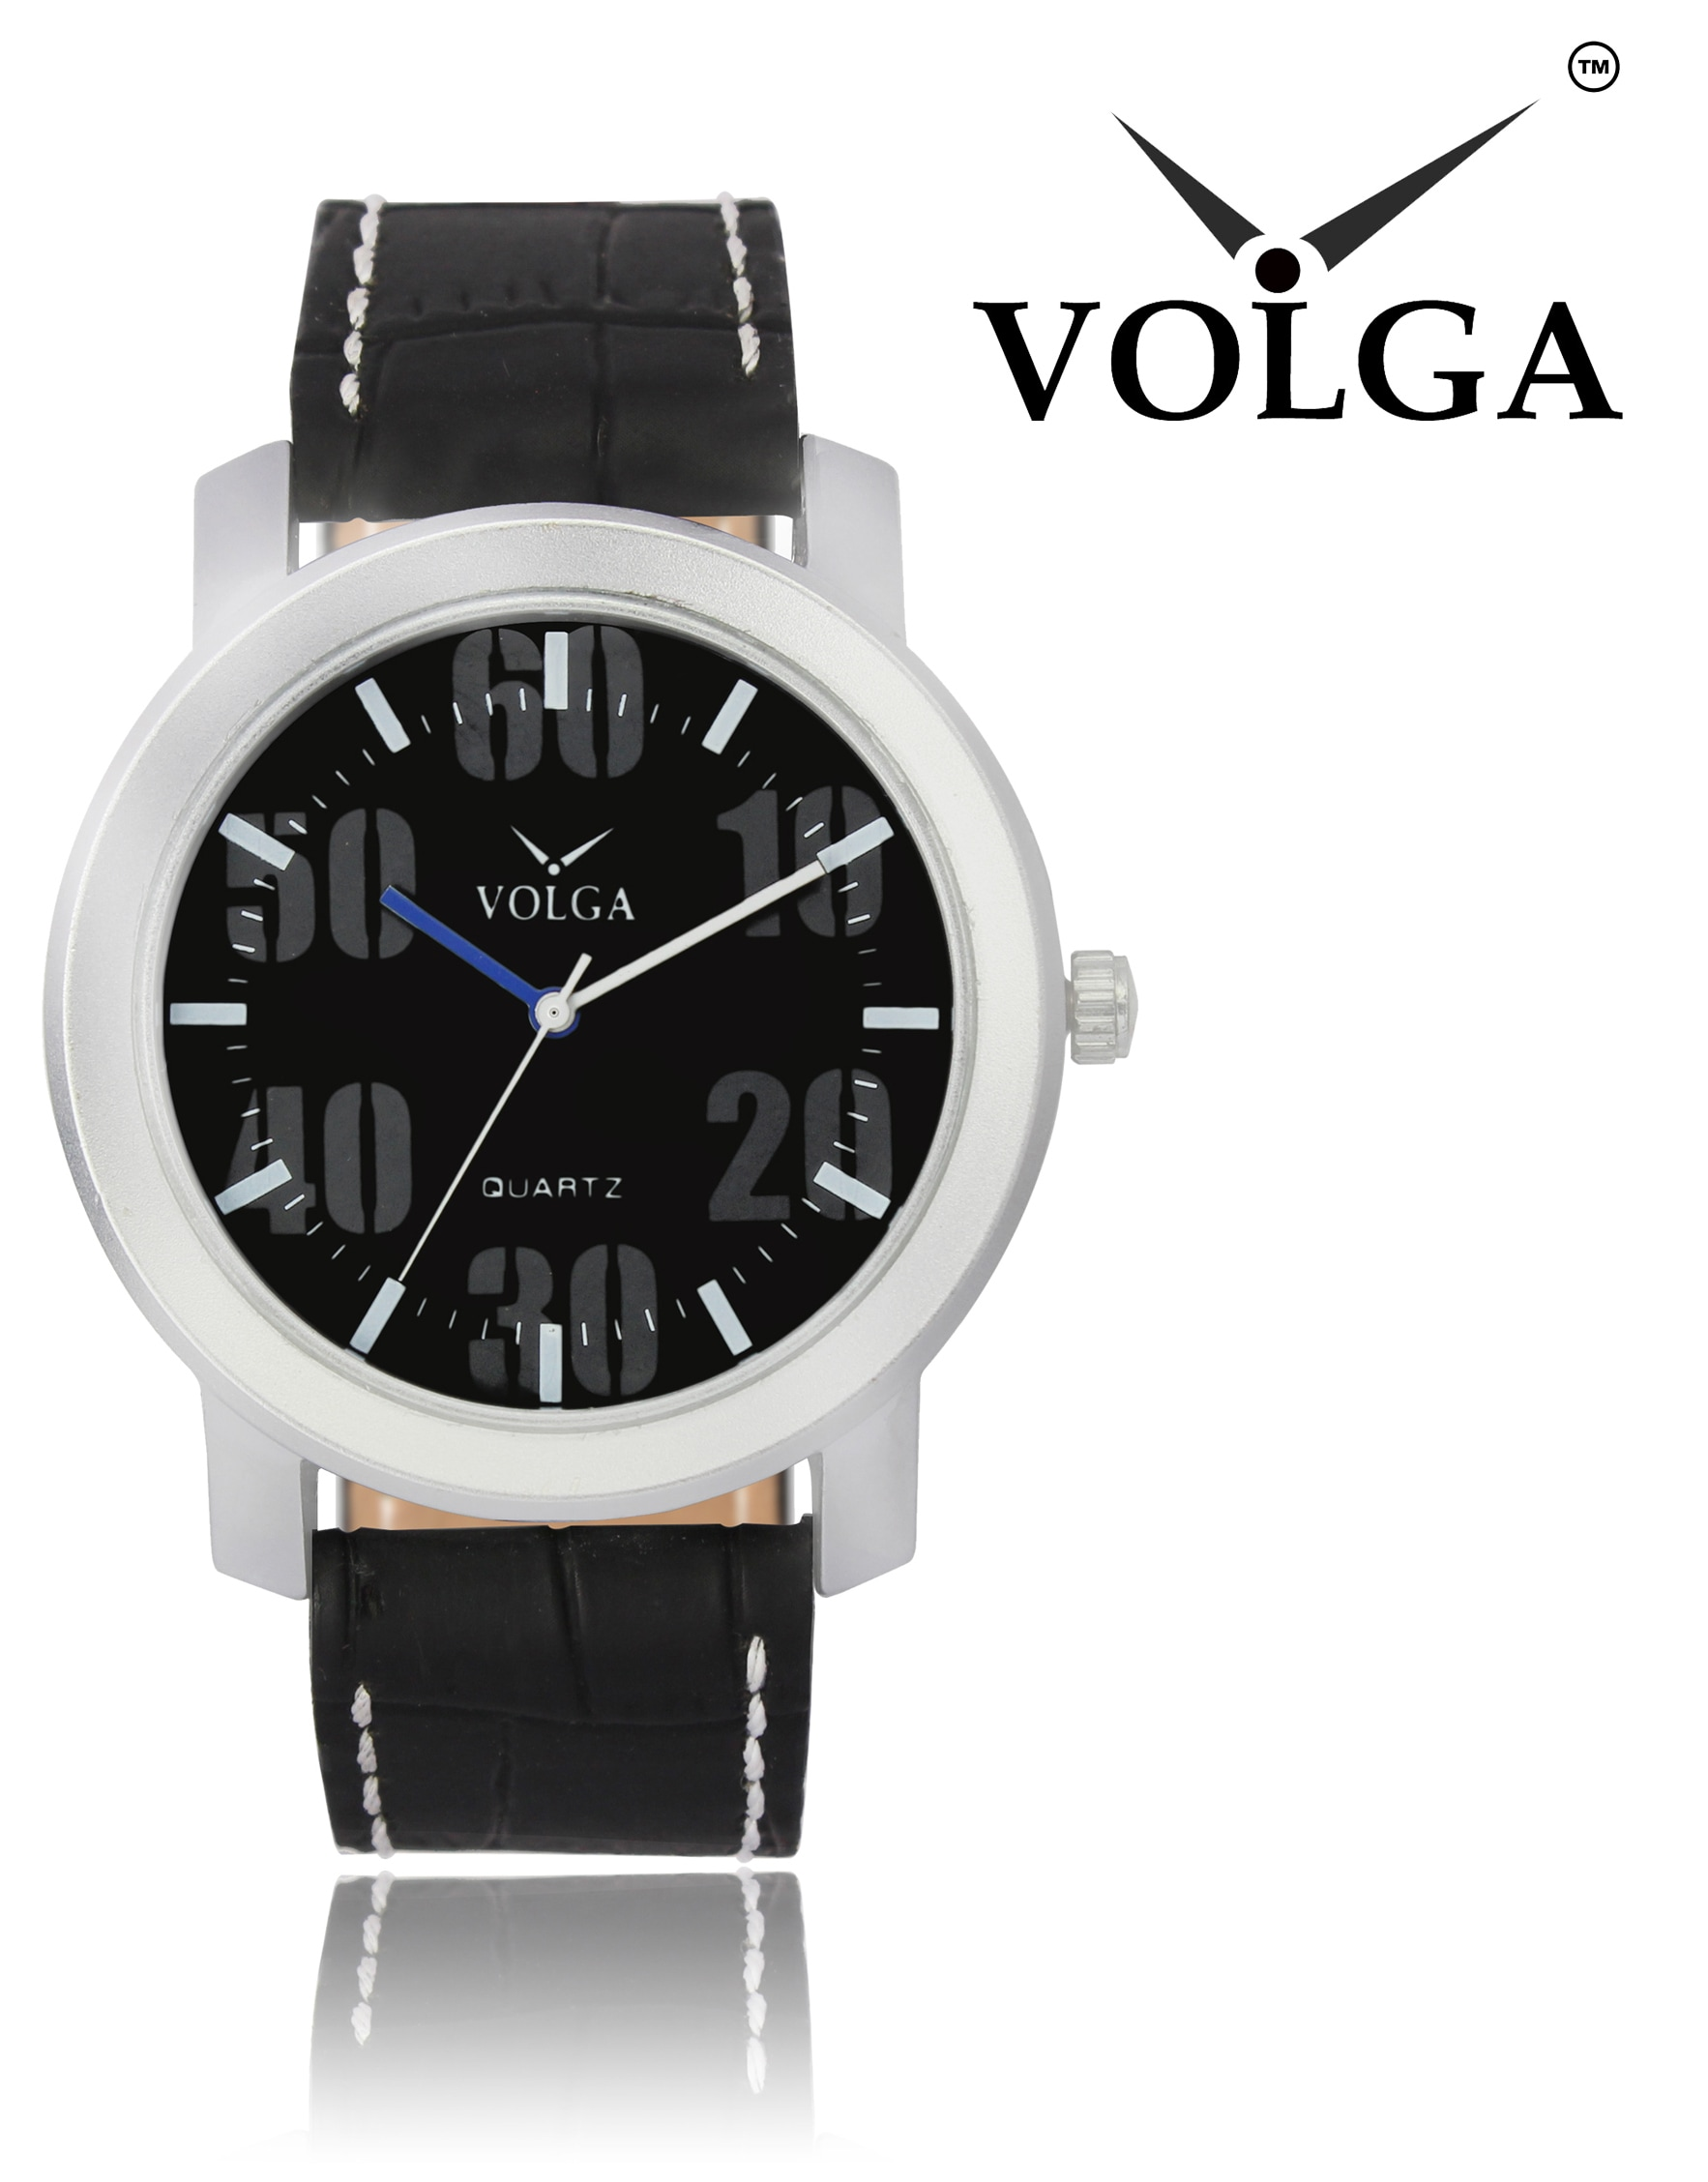 New Arrival Volga Collection Analogue Sport Dial Watch For Boys And Men